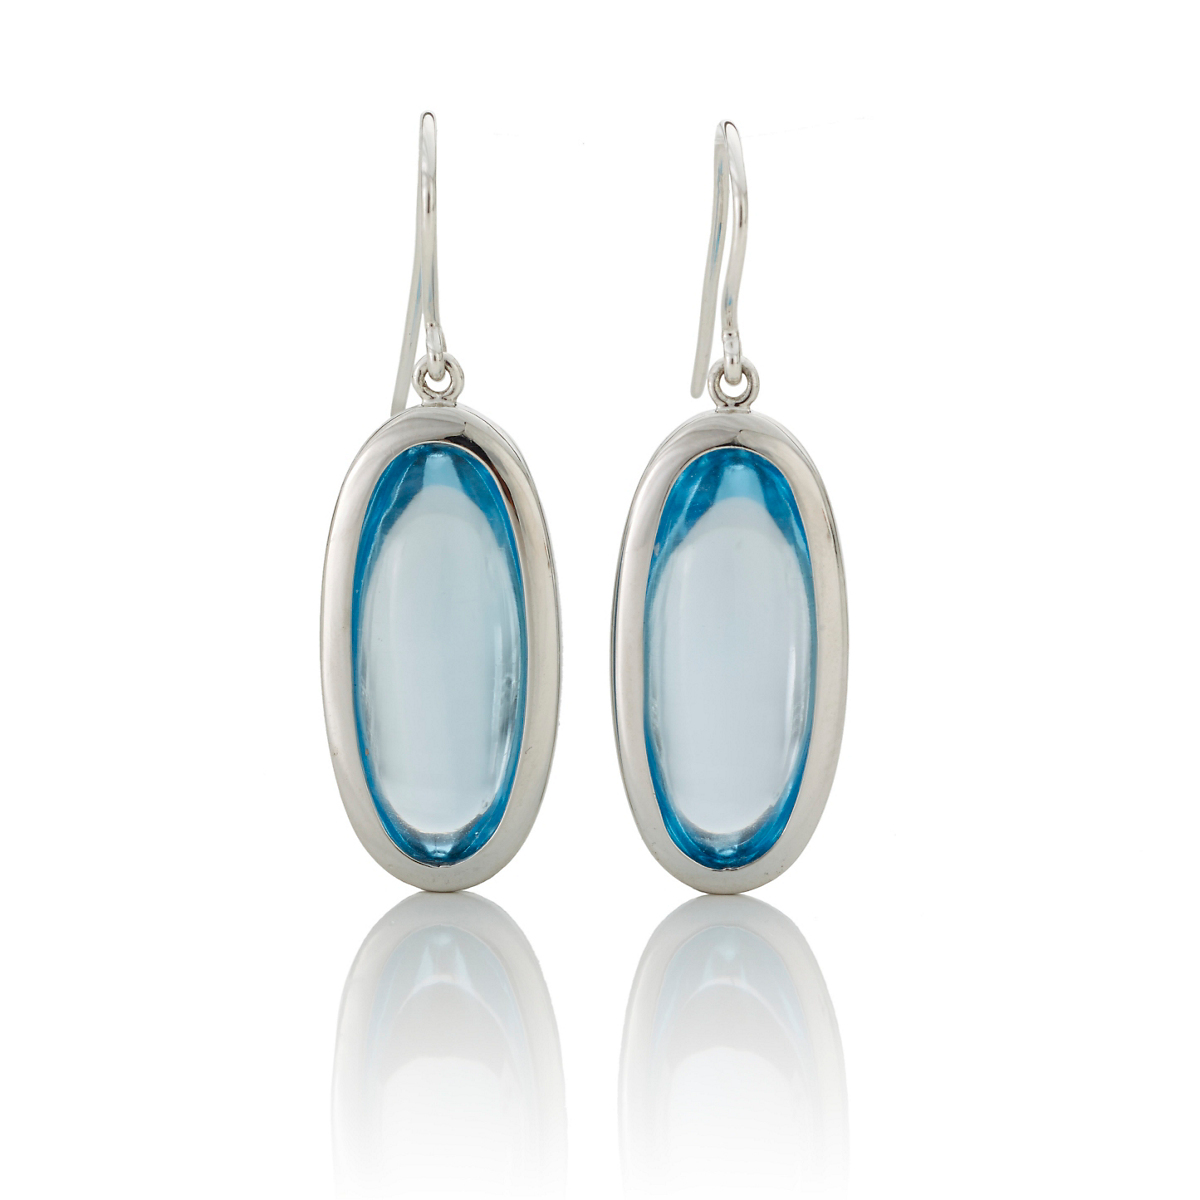 Gump's Blue Topaz Oval Drop Earrings